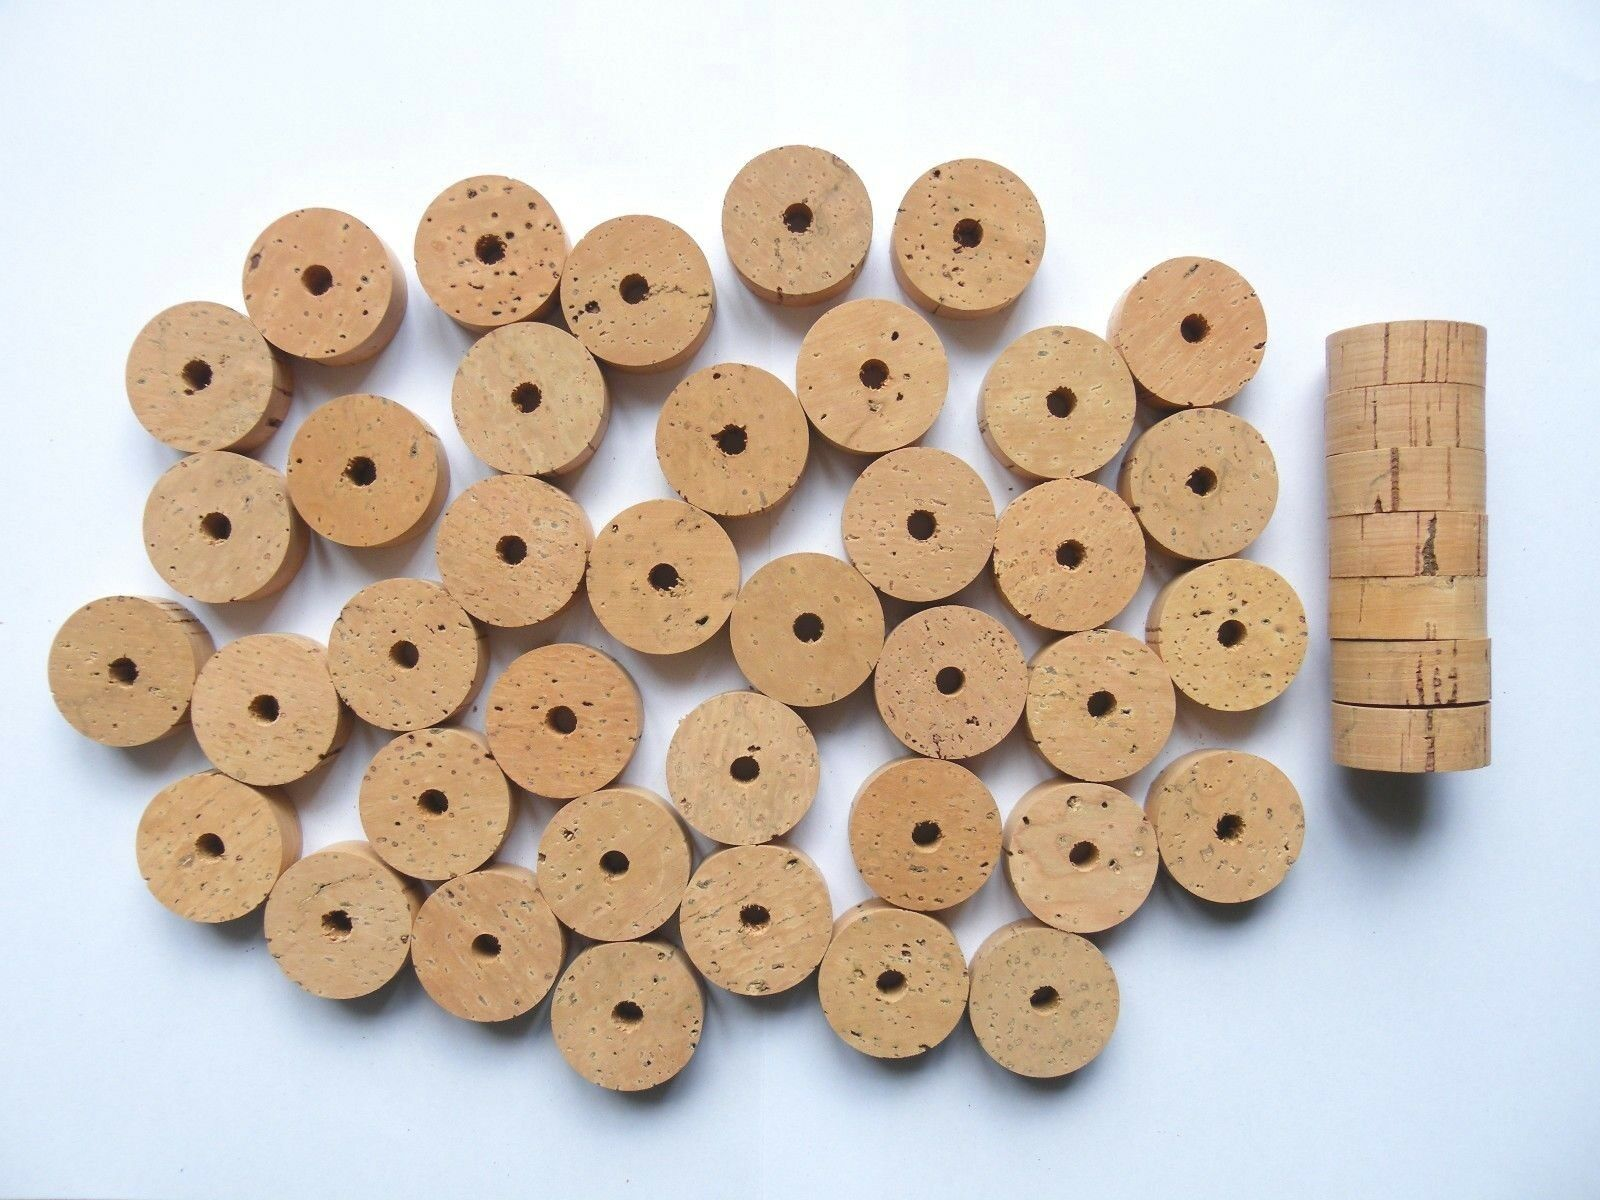 50 CORK  RINGS 11 4 X1 2  GRADE EXTRA BORE 1 4  ---- Free ship  buy best